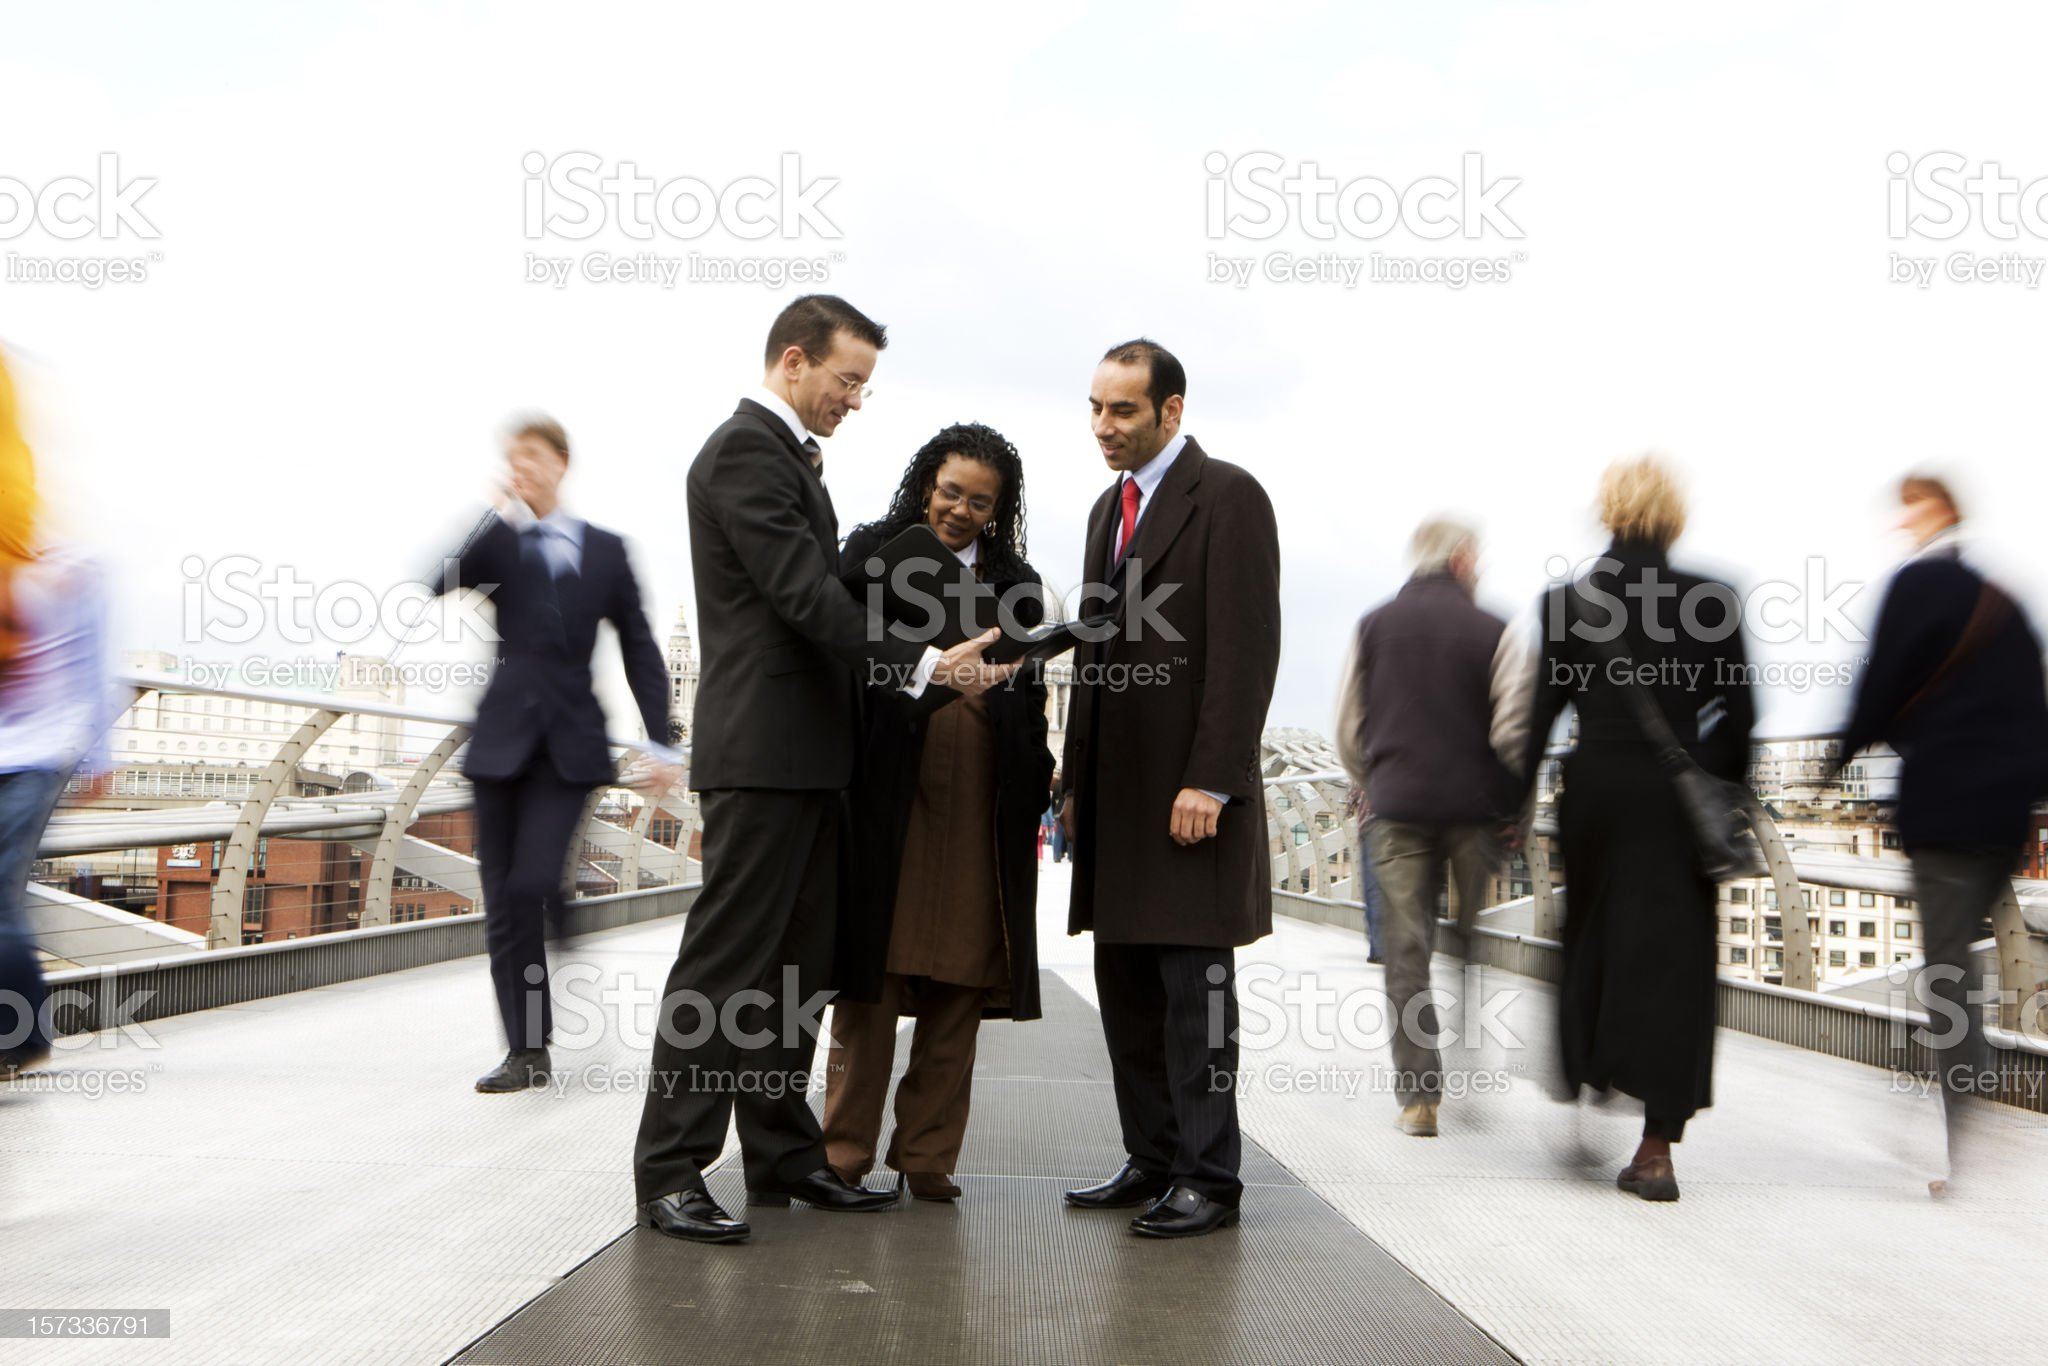 Public meeting between a small diverse group of business professionals royalty-free stock photo